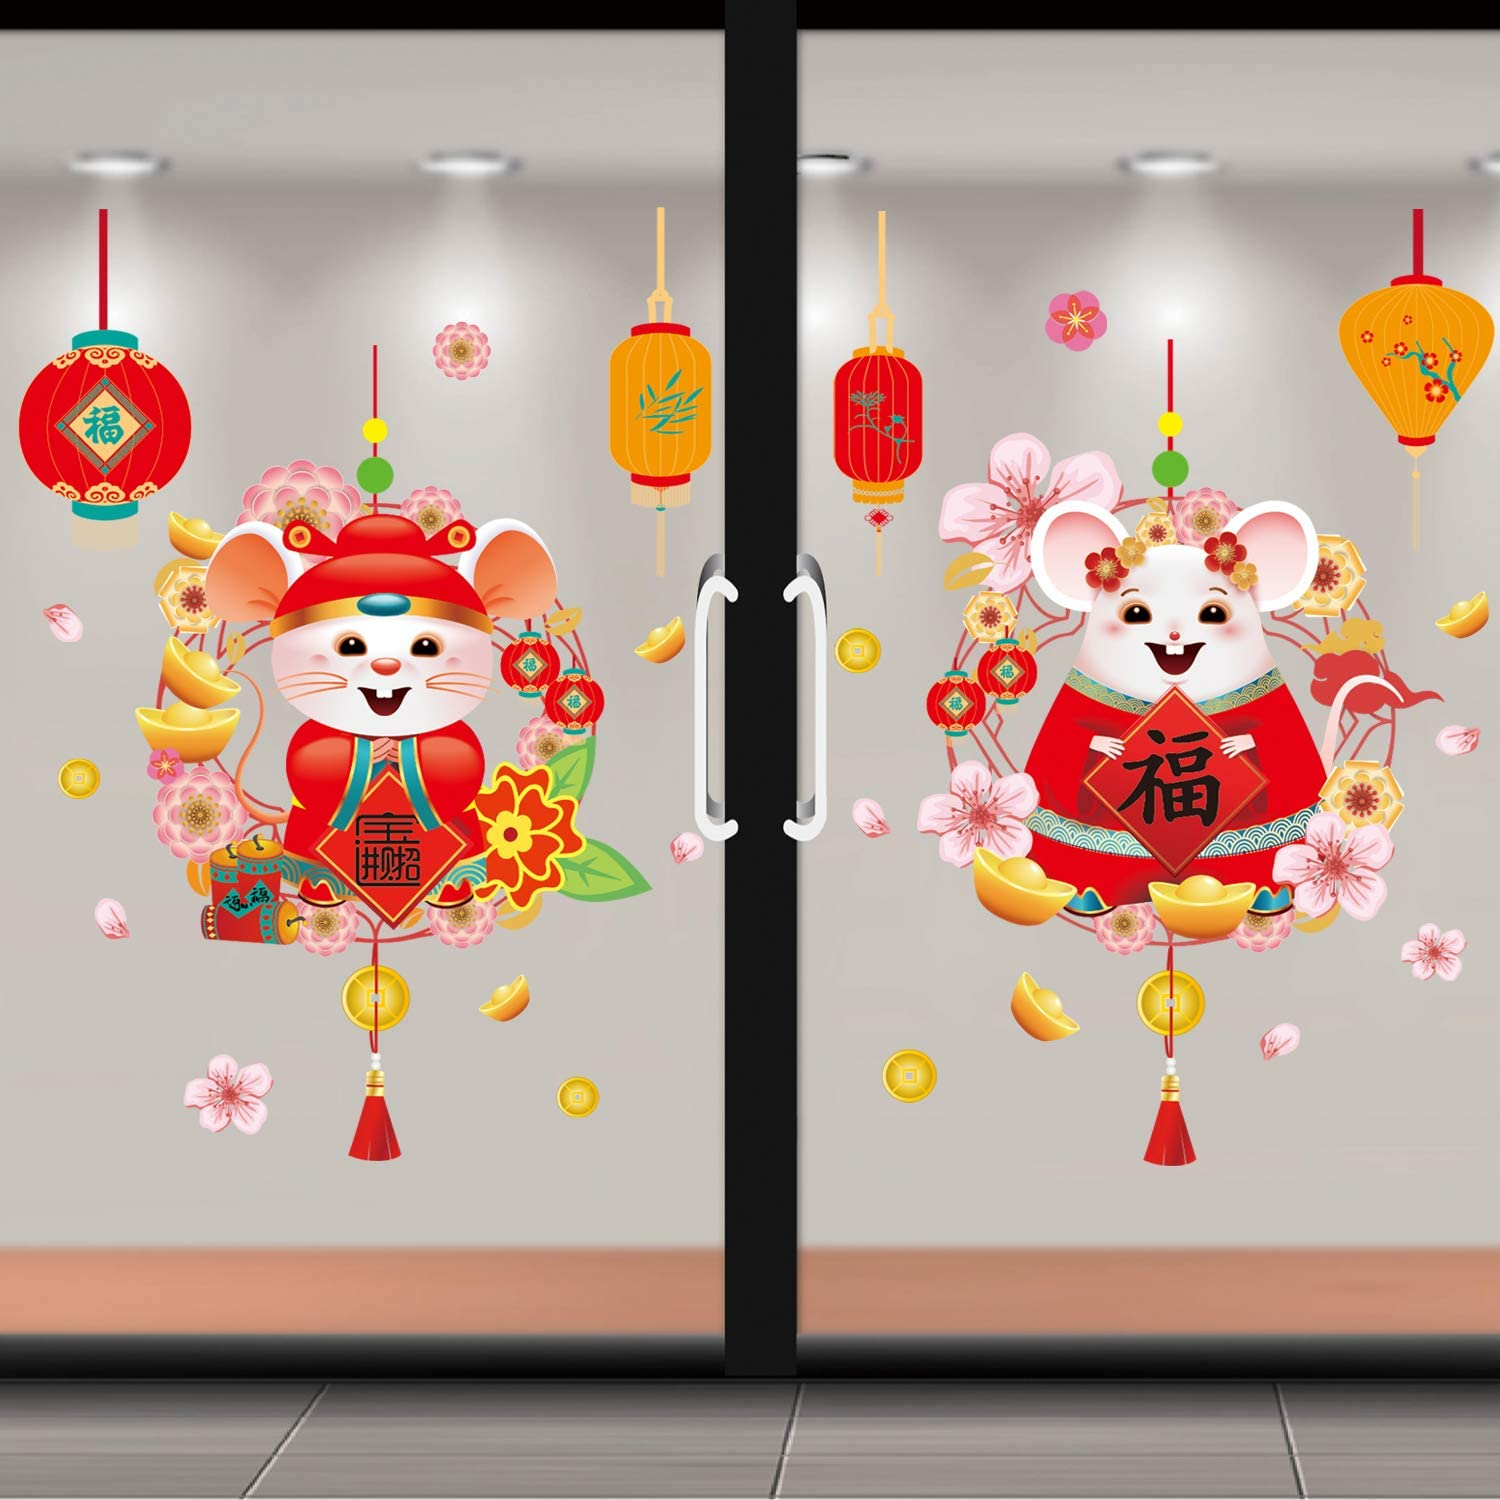 Adurself Chinese New Year Window Clings 2020 Spring Festival Decorations Mouse Year Window Decals Stickers for Home Restaurant Store Party Decor Ornaments (A)